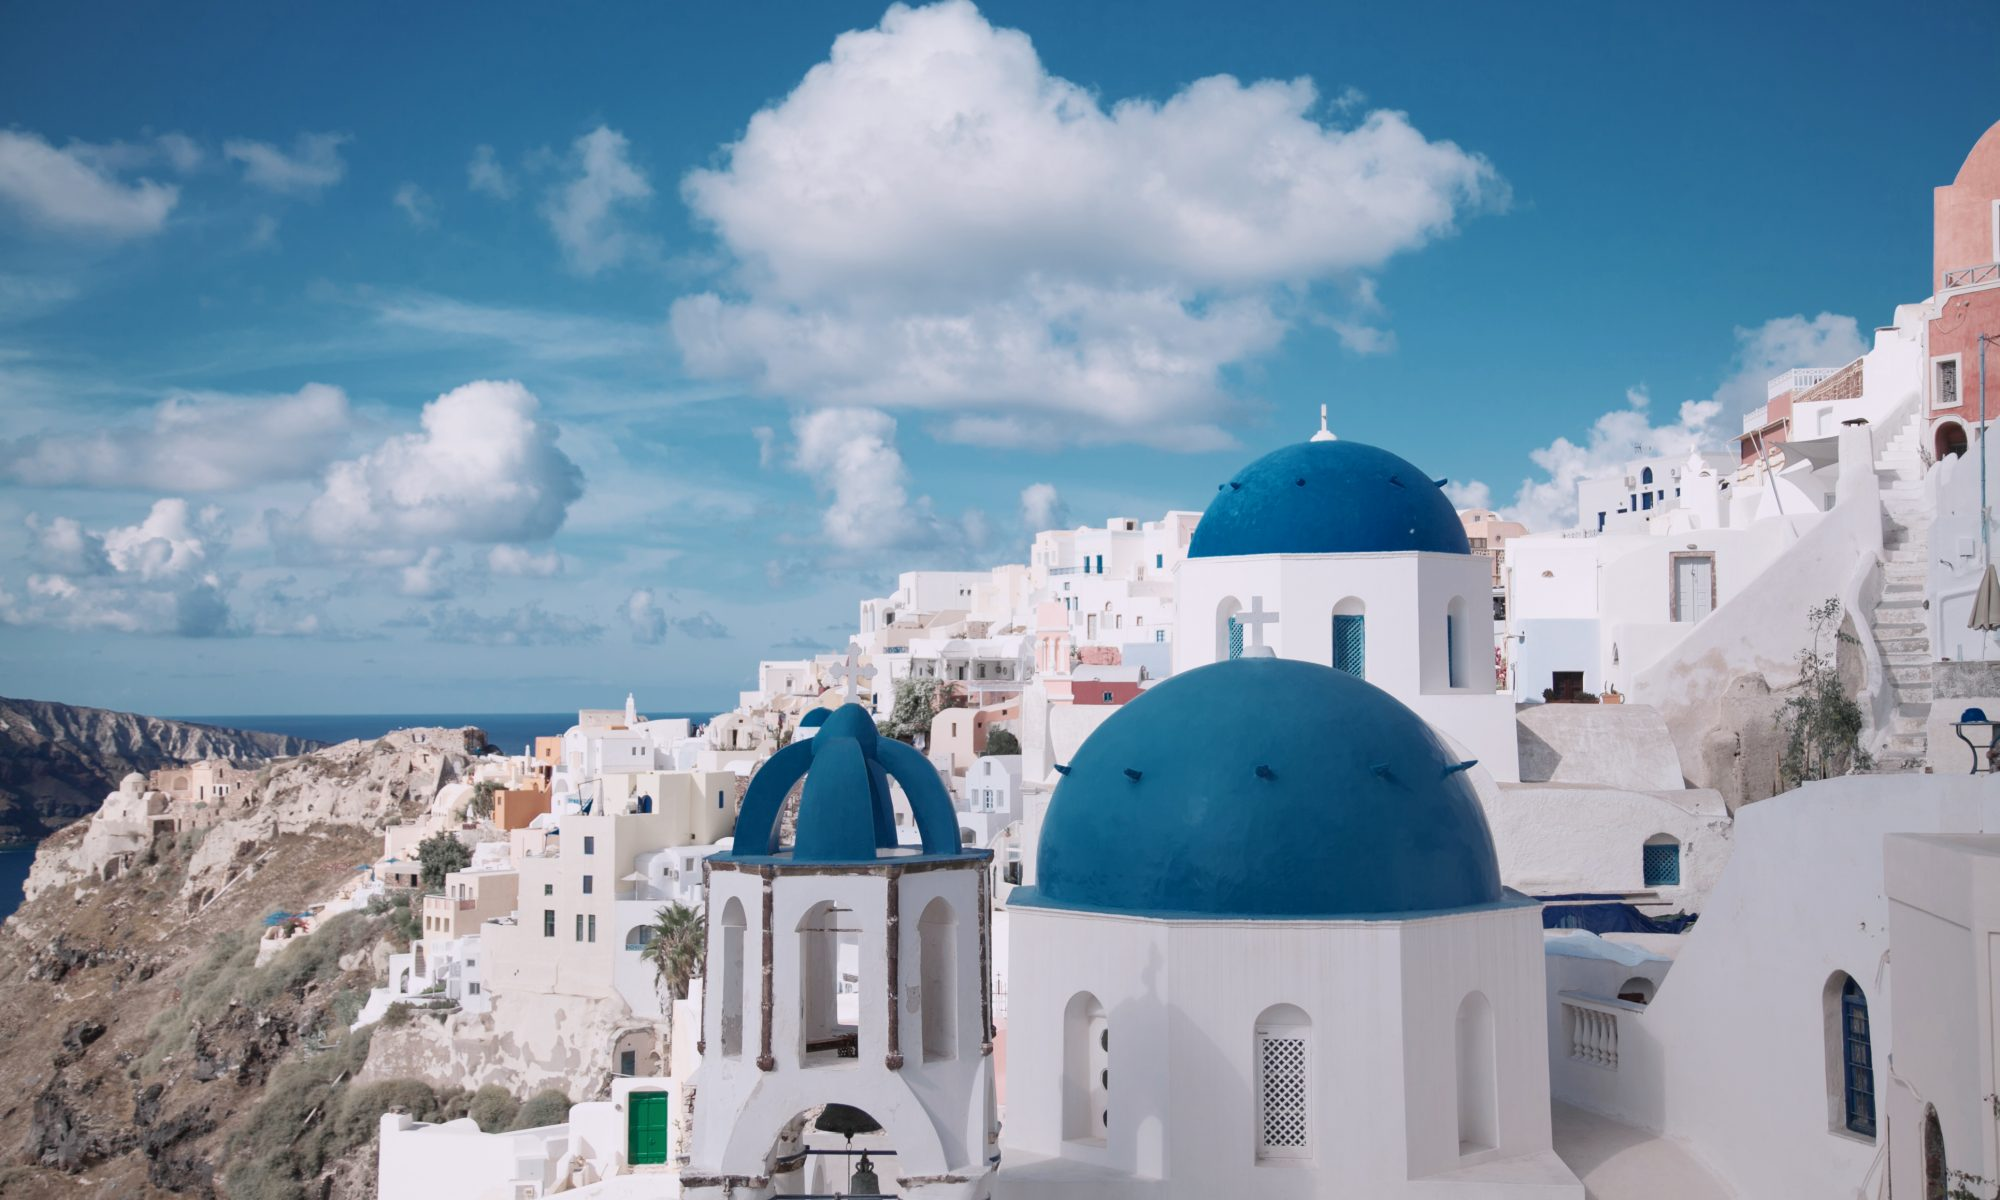 Canva - Photo of Santorini, Greece